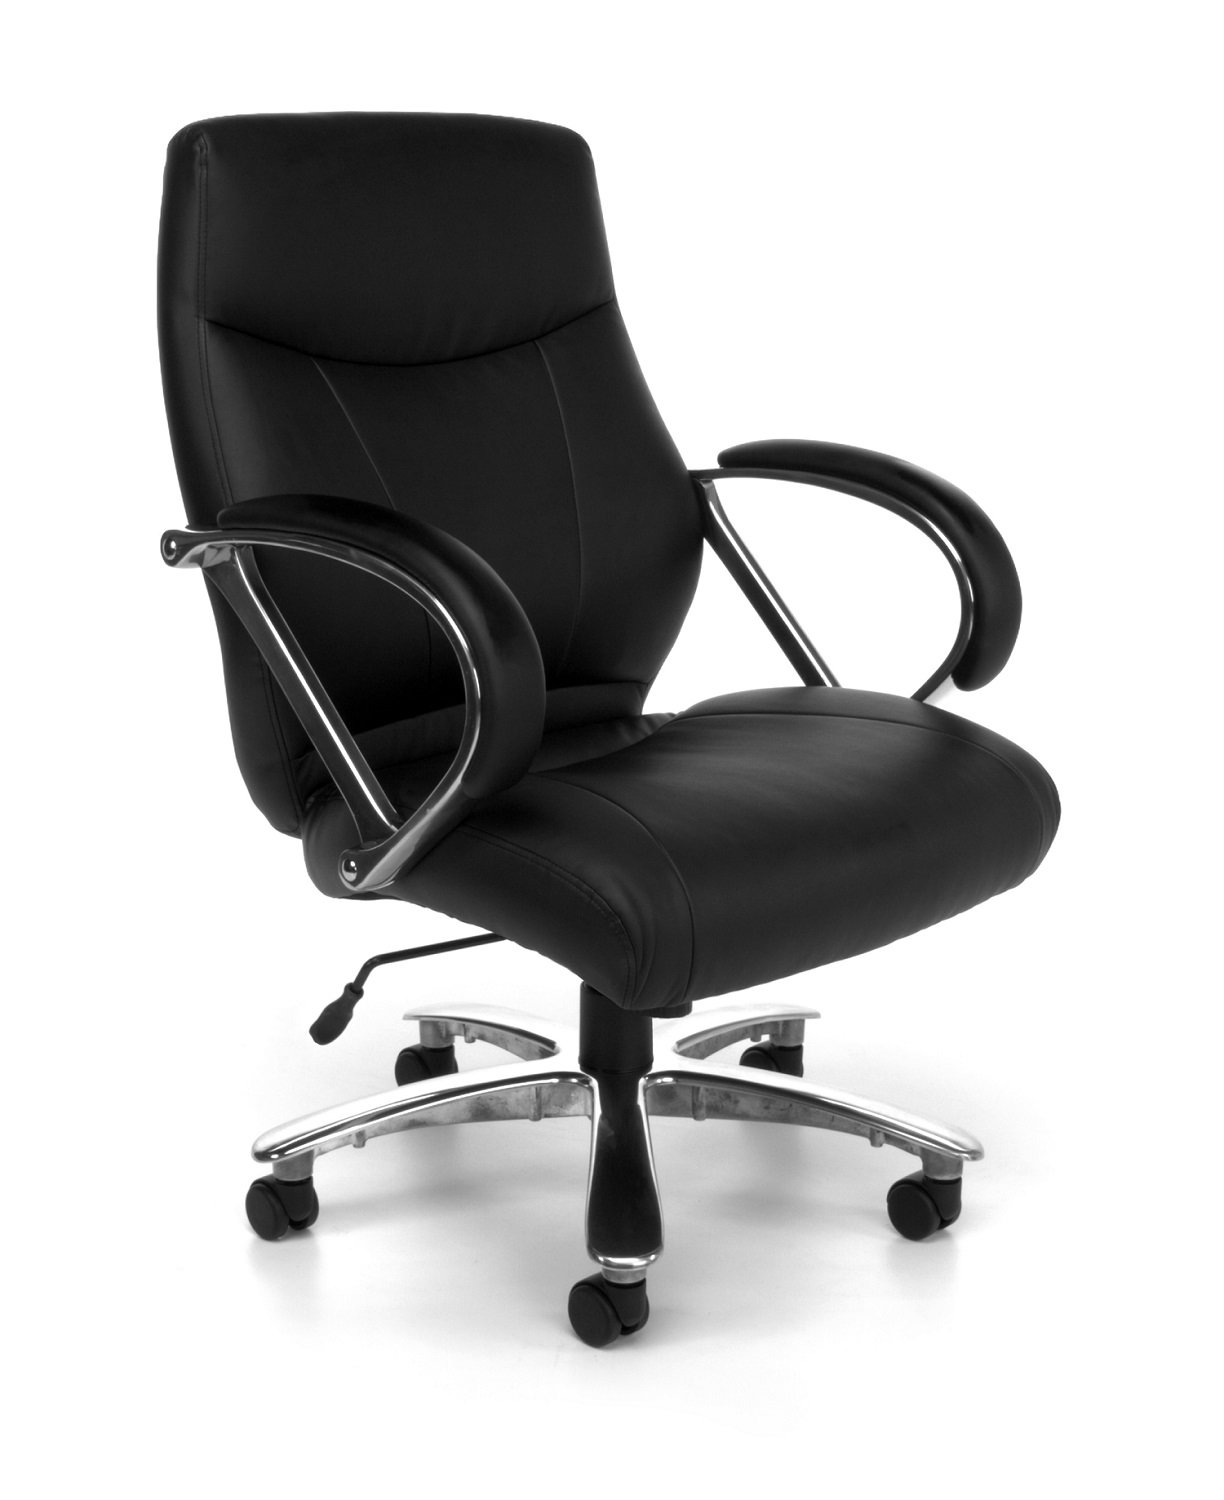 OFM Avenger Series Big and Tall Leather Executive Chair - Black Mid Back Computer Chair with Arms, Black (811-LX-BLK) by OFM